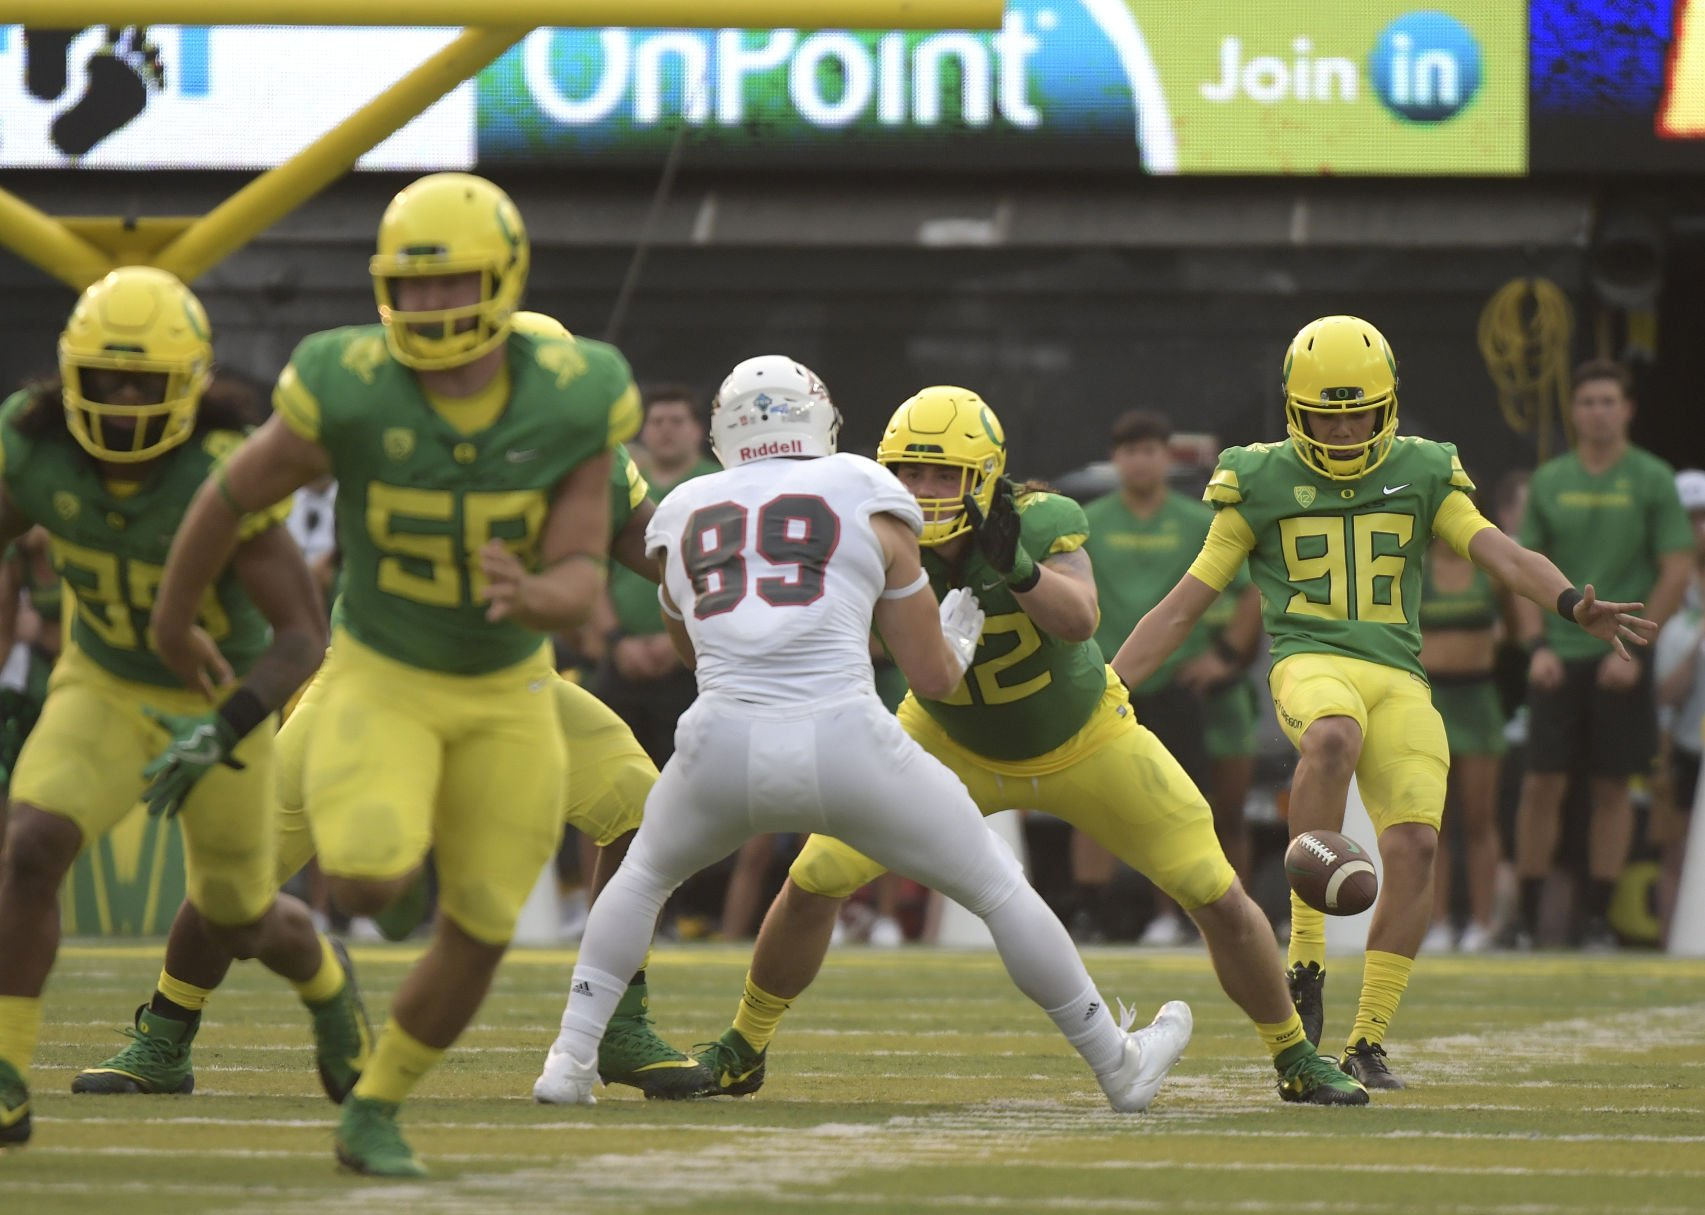 Oregon QB Justin Herbert Out Indefinitely With Broken Collarbone